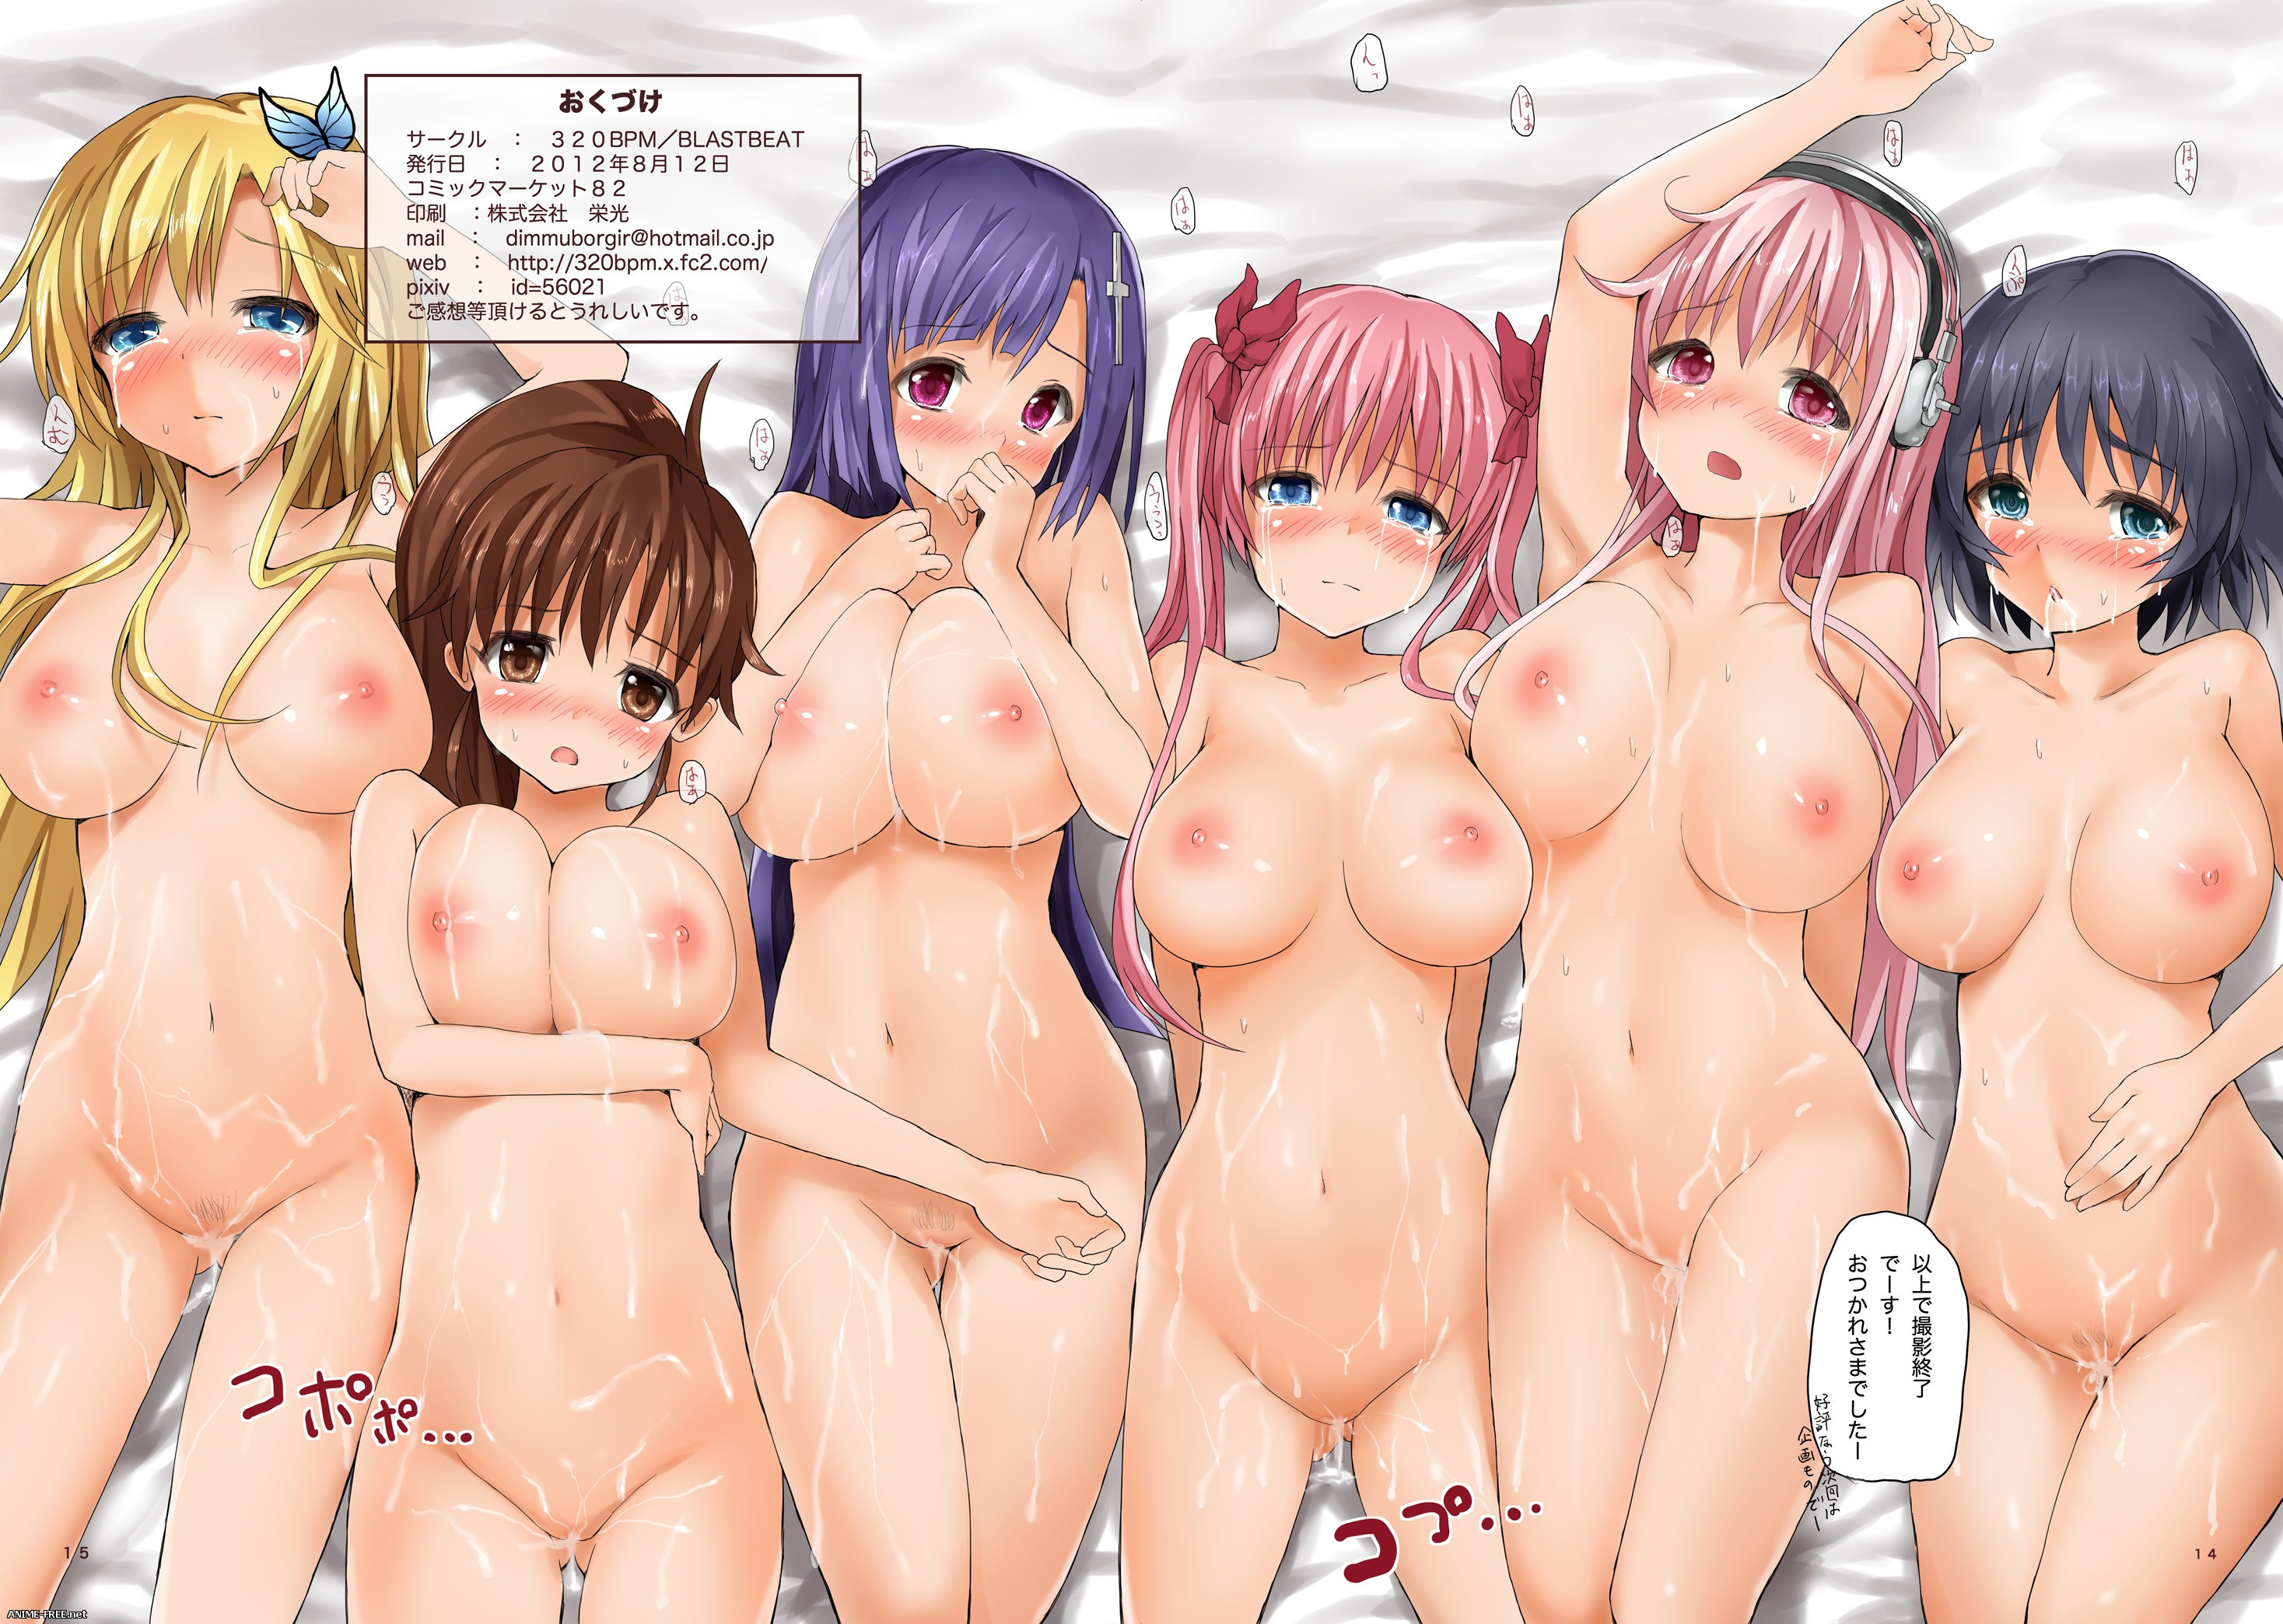 Kannagi: Crazy Shrine Maidens (Collection) - Хентай арт (сборник) [Ptcen] [JPG,PNG,GIF] Hentai ART